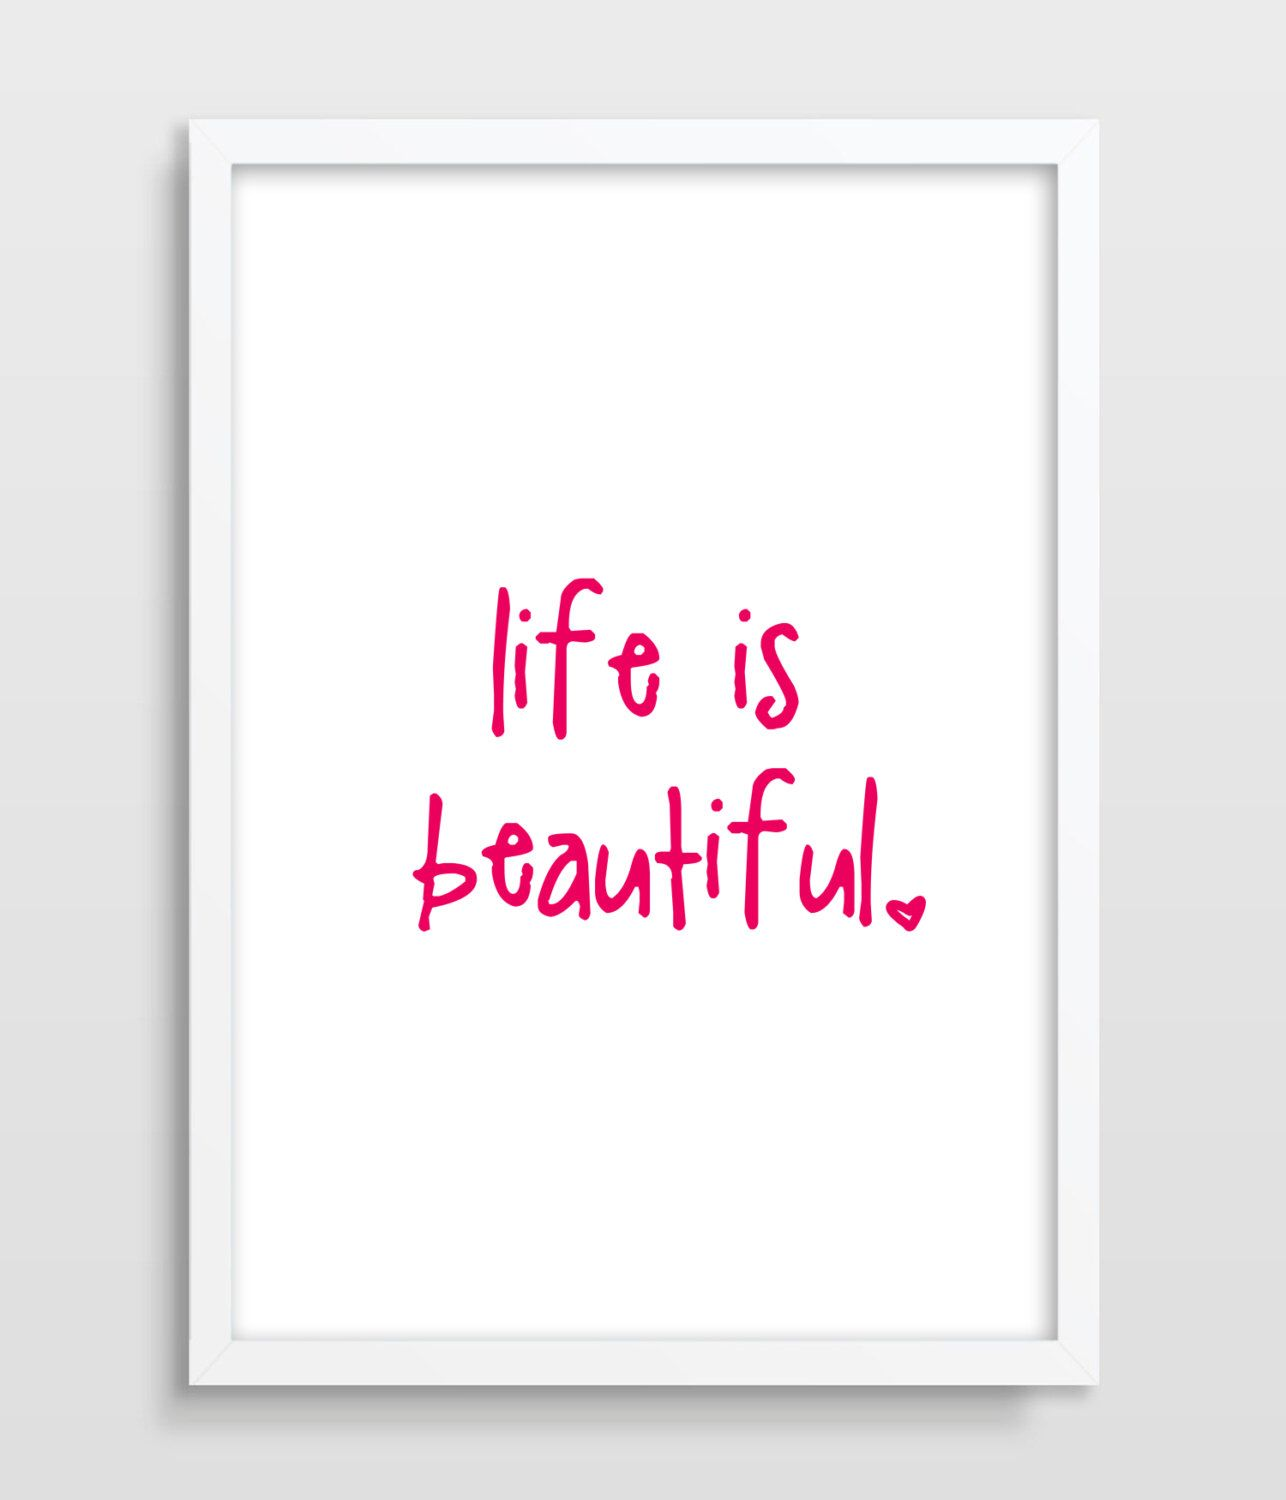 Typographic Print, Life Is Beautiful, Inspirational Quote, Motivational Quote Print, Typography Print, Valentine's Gift. by TheWatermelonFactory on Etsy https://www.etsy.com/listing/182517183/typographic-print-life-is-beautiful